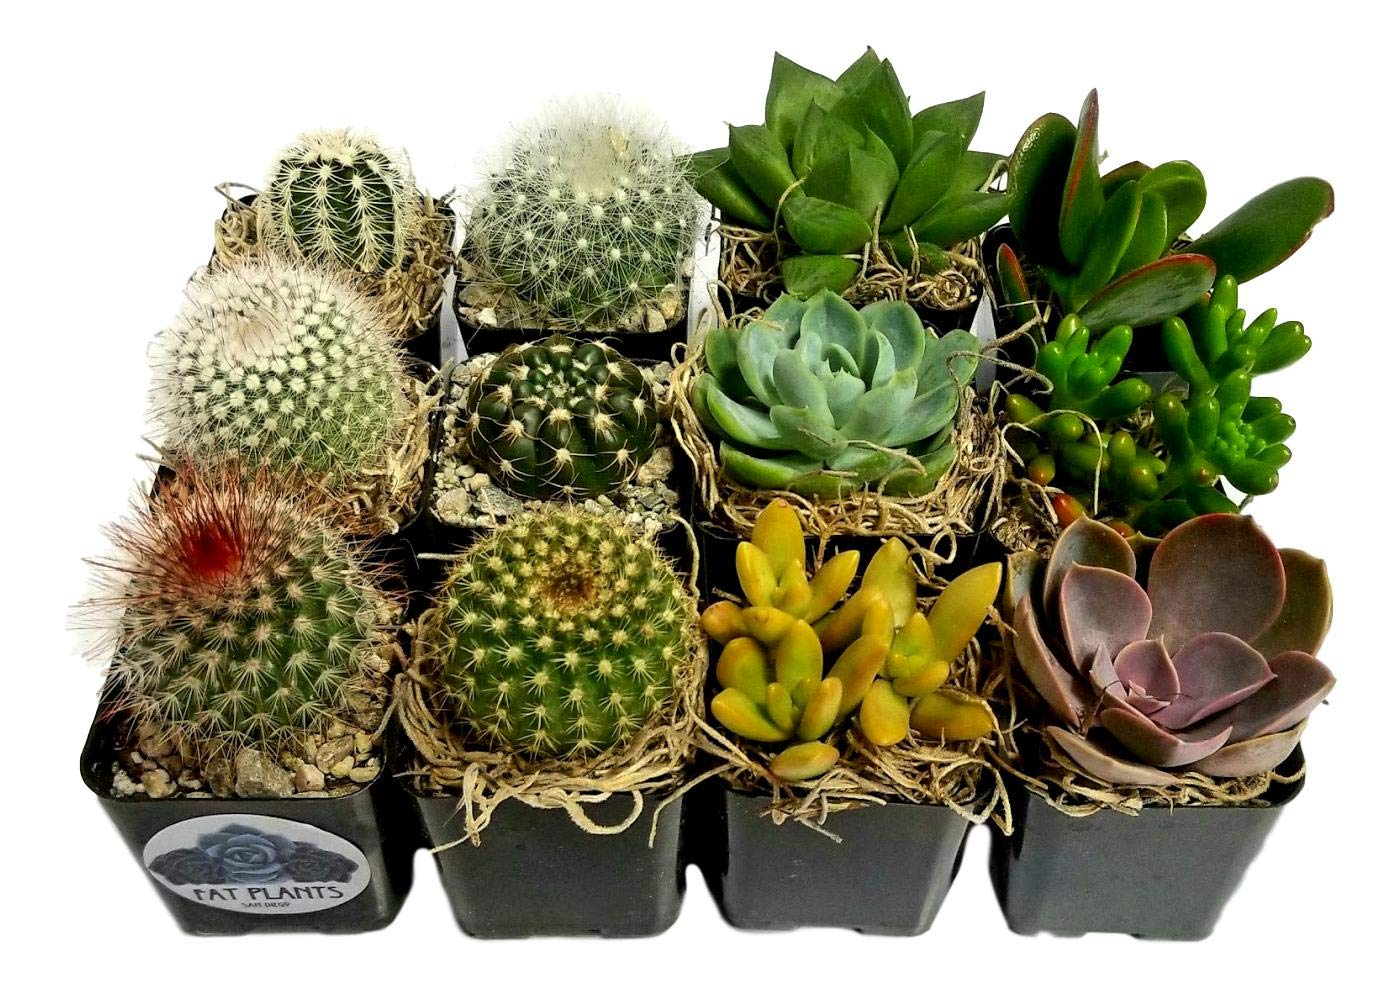 Fat Plants San Diego Miniature Flowering Cactus and Succulent Plant Collection (12) by Fat Plants San Diego